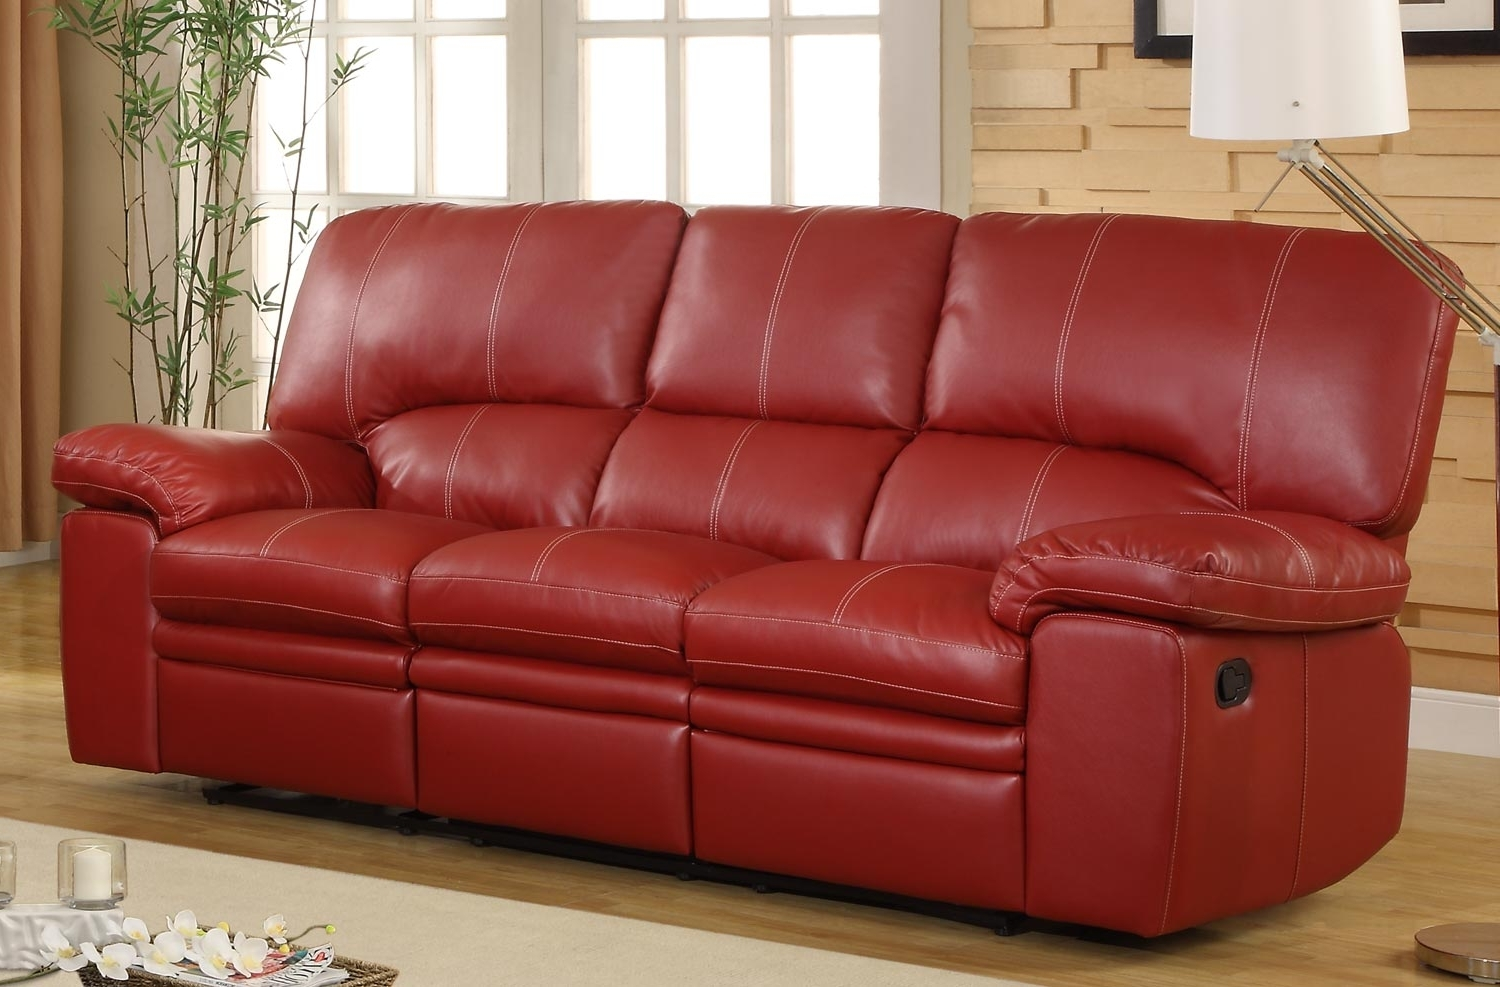 2019 Red Leather Sectional Sofas With Recliners Intended For Homelegance Kendrick Double Recliner Sofa – Red – Bonded Leather (View 8 of 20)